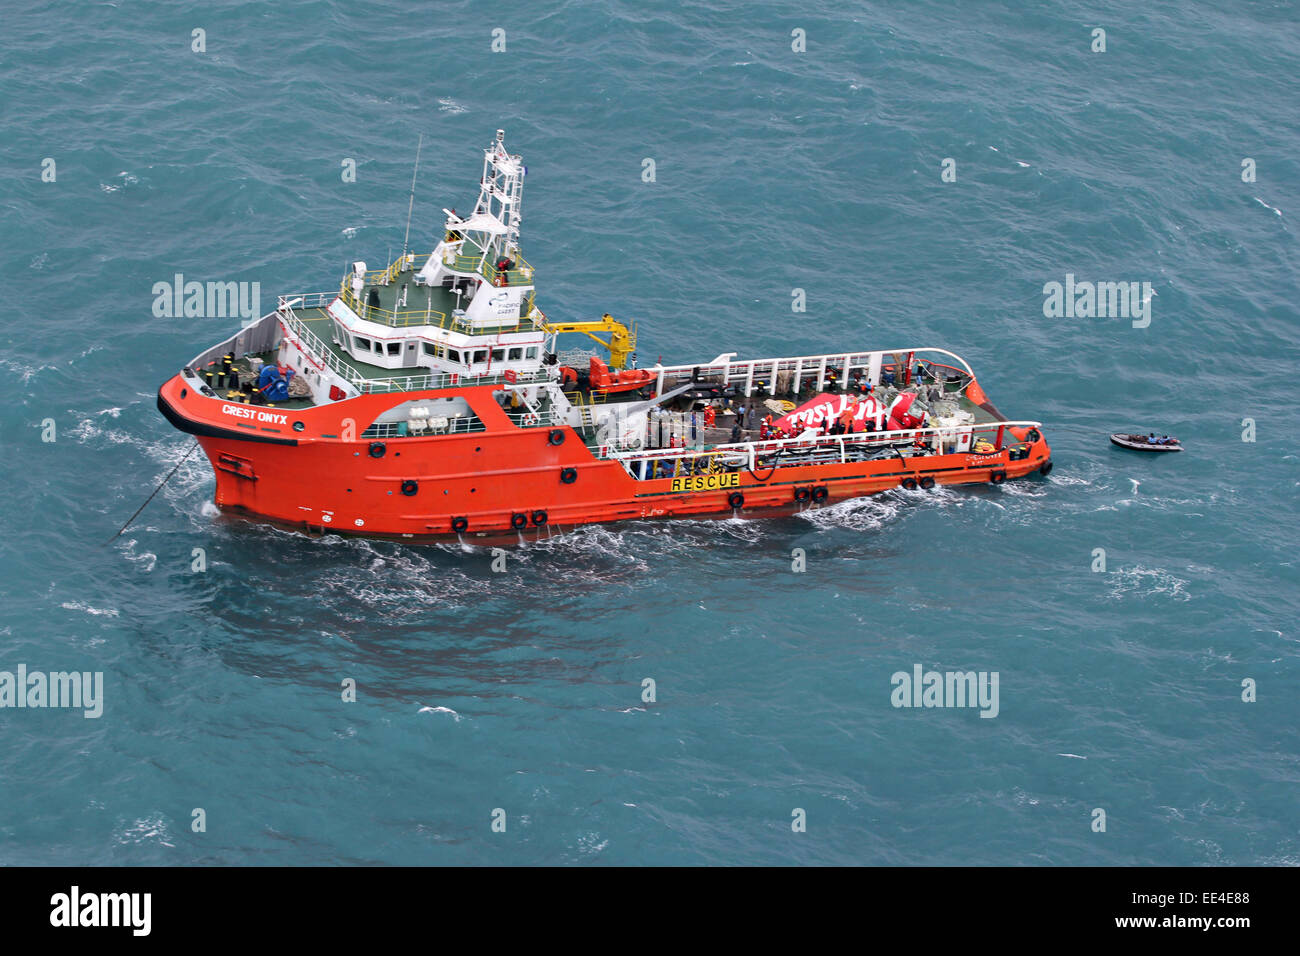 Offshore supply ship the Crest Onyx holds the tail section of Air Asia flight 8501 after recovering the piece from Stock Photo